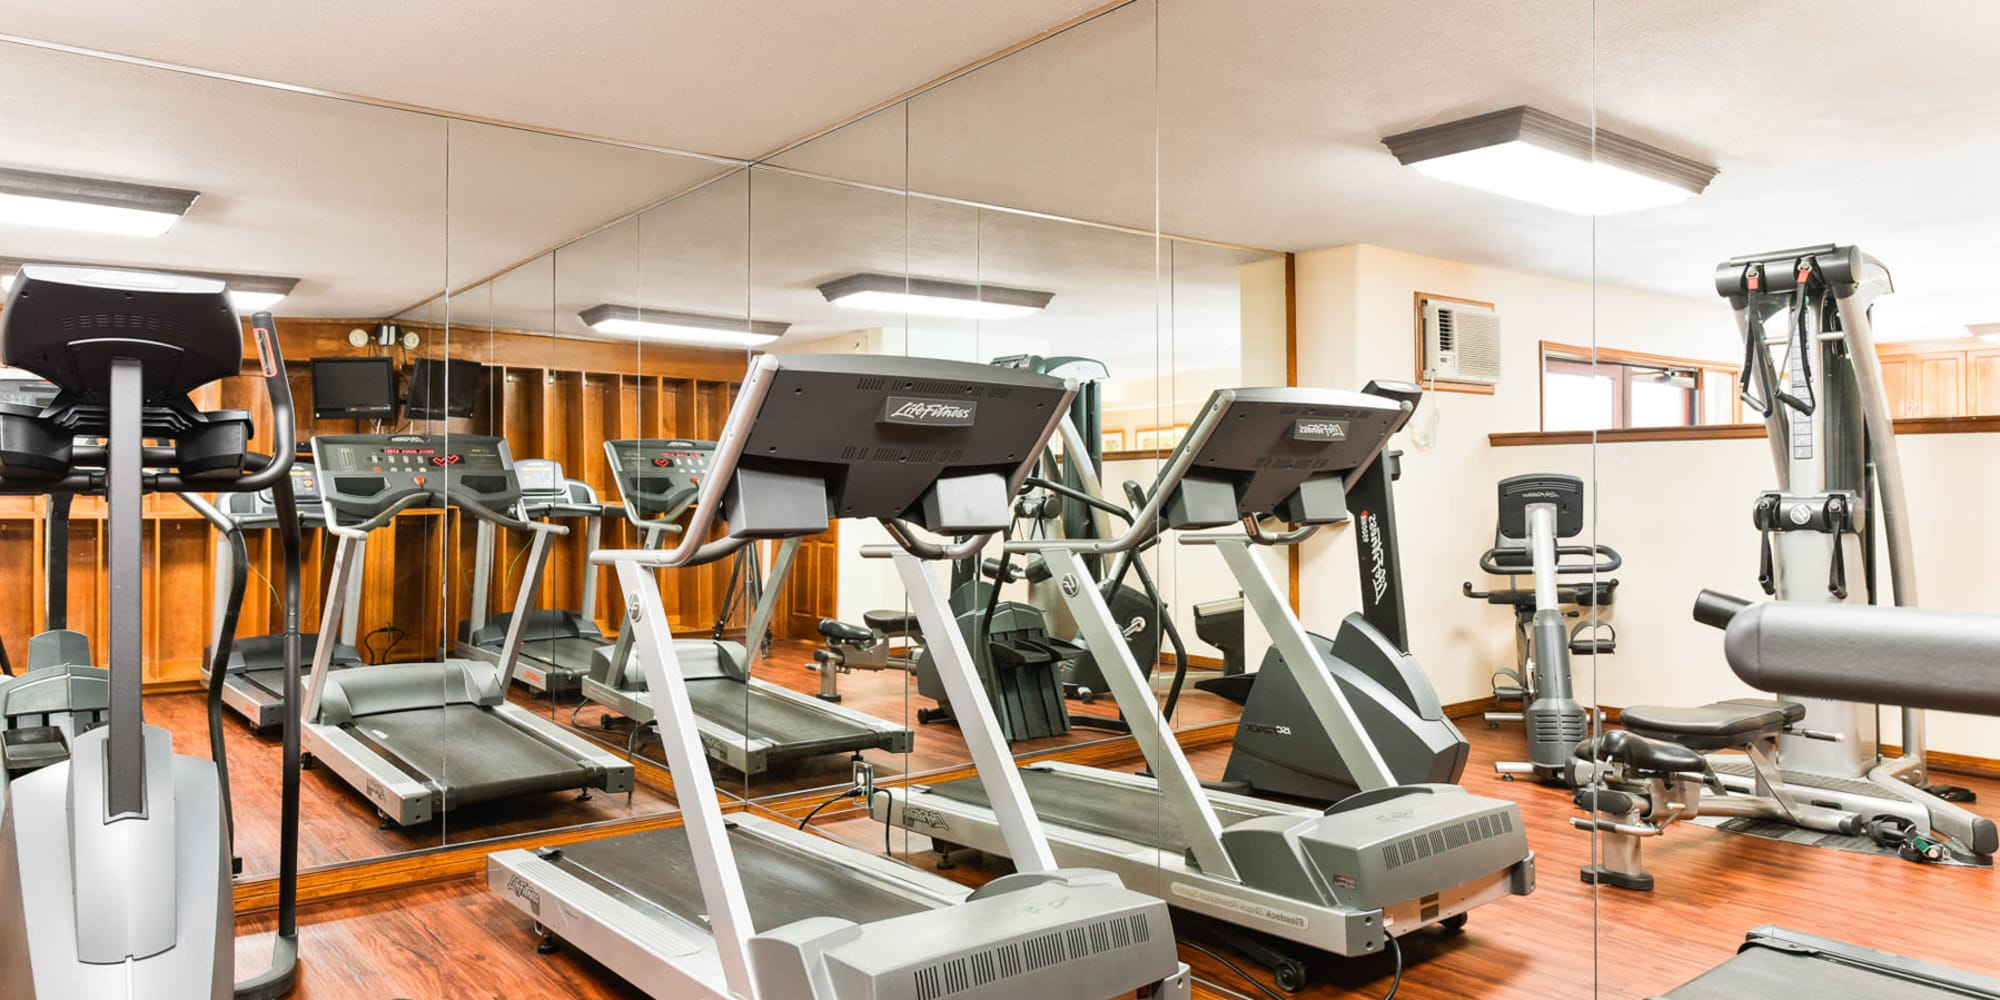 Cardio equipment and exercise machines in the fitness center at Village Pointe in Northridge, California